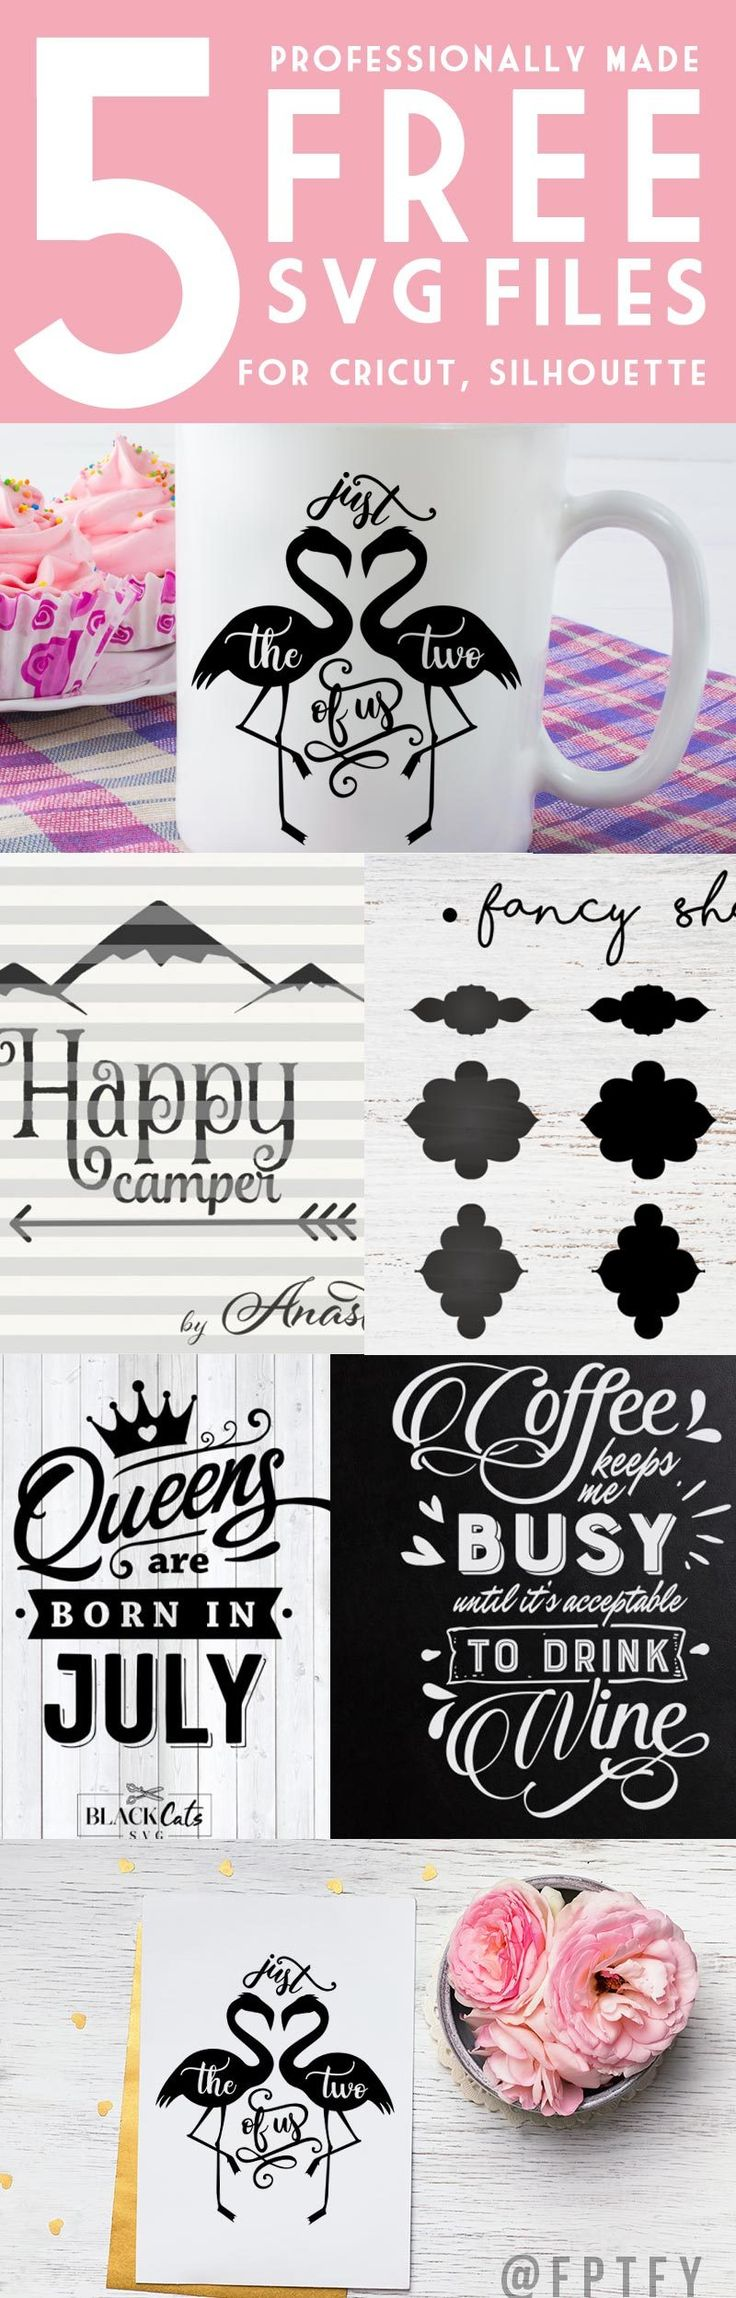 FREE 5 Professionally Made SVG Cutting Files, compatible with Cameo Silhouette, Cricut. Flamingo Free SVG, Coffee Free SVG, Happy camper Free SVG, Queens Free SVG